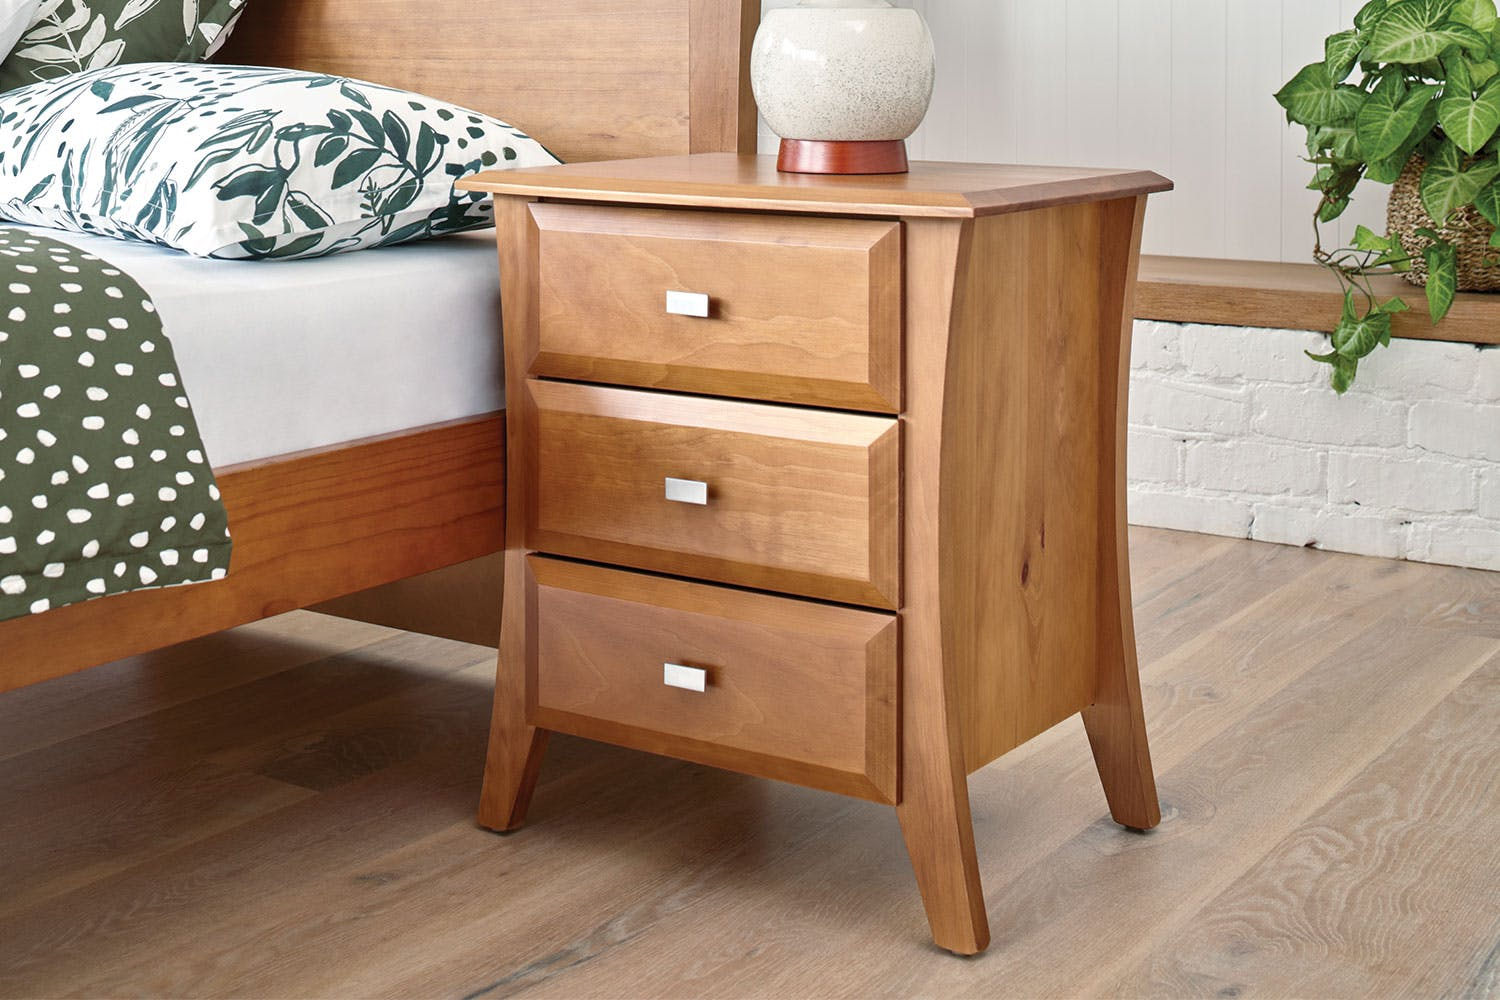 Lynbrook 3 Drawer Bedside Table By Coastwood Furniture Harvey Norman New Zealand